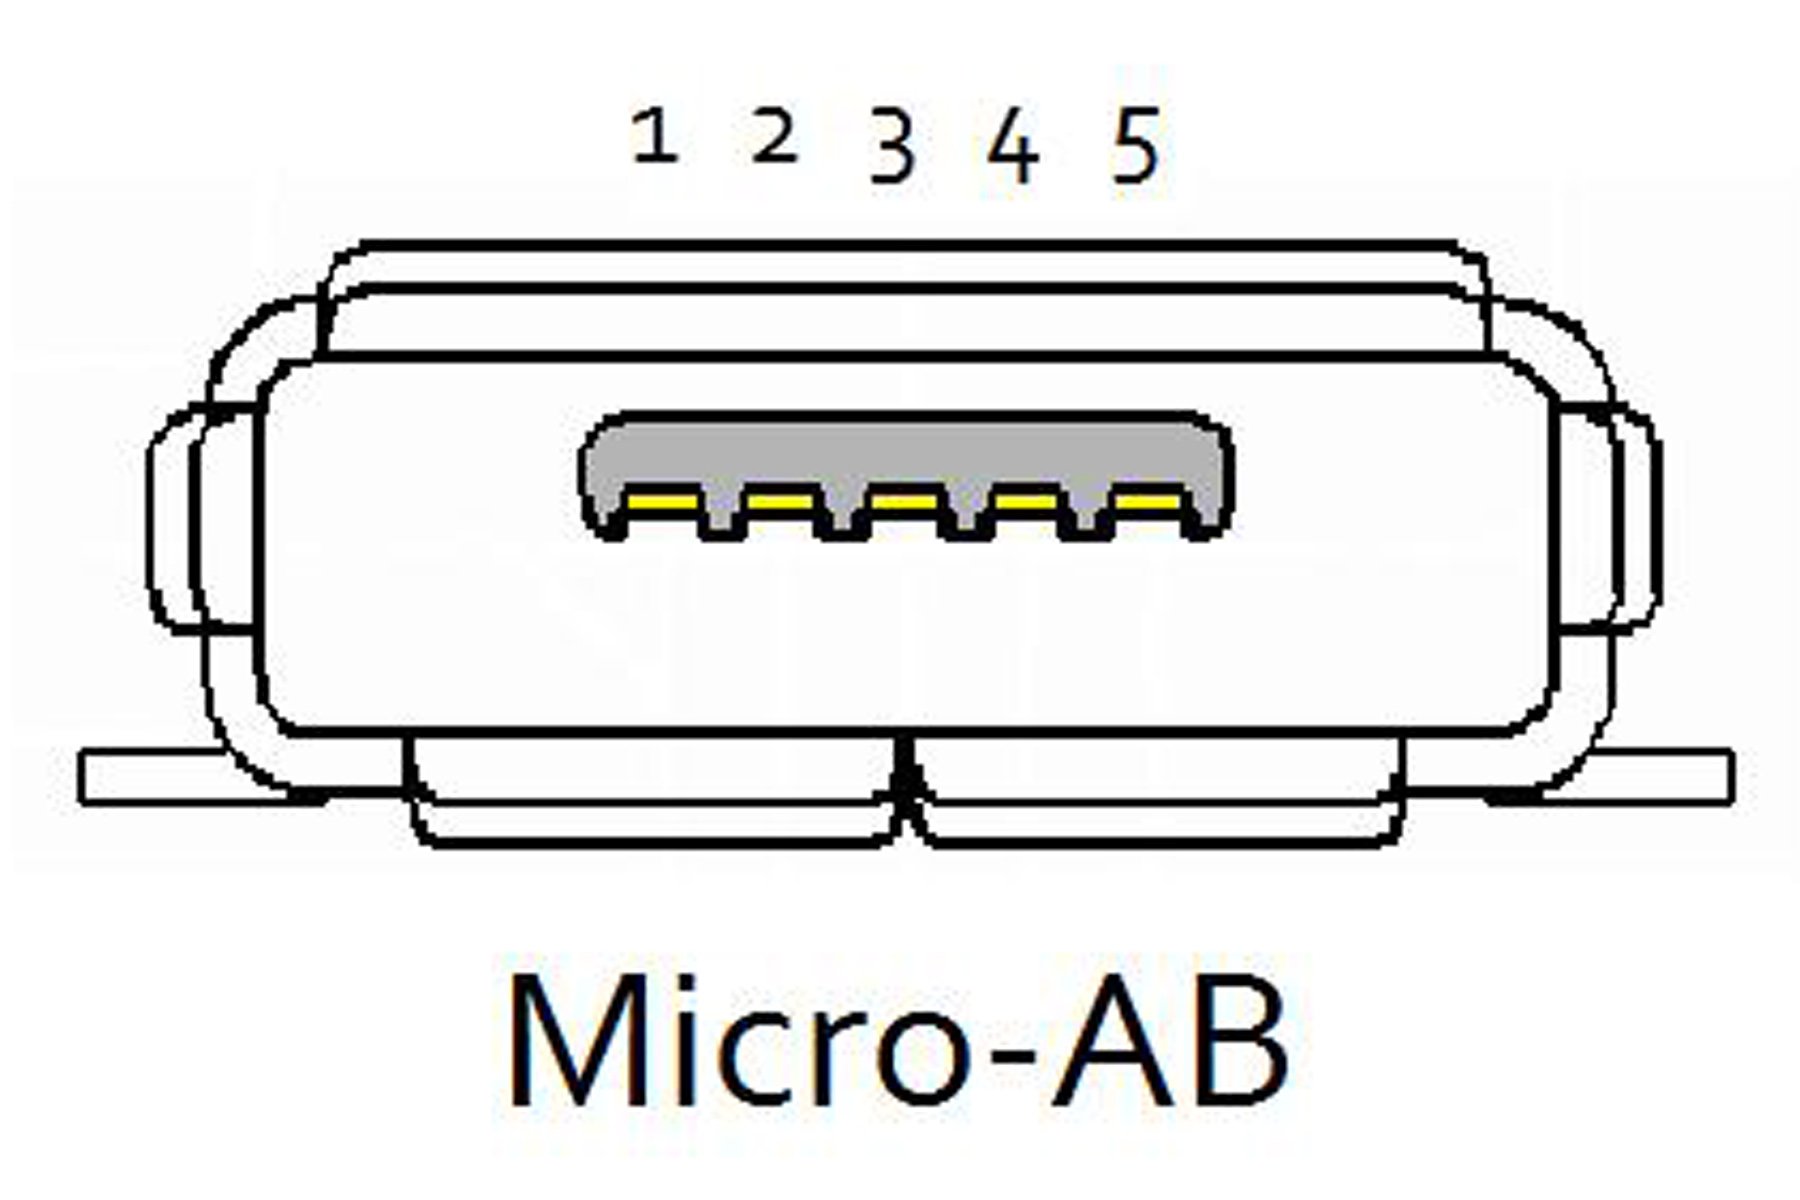 Mini Usb Diagram Starting Know About Wiring Of A Micro File Ab Receptacle Wikimedia Commons Connector Wire